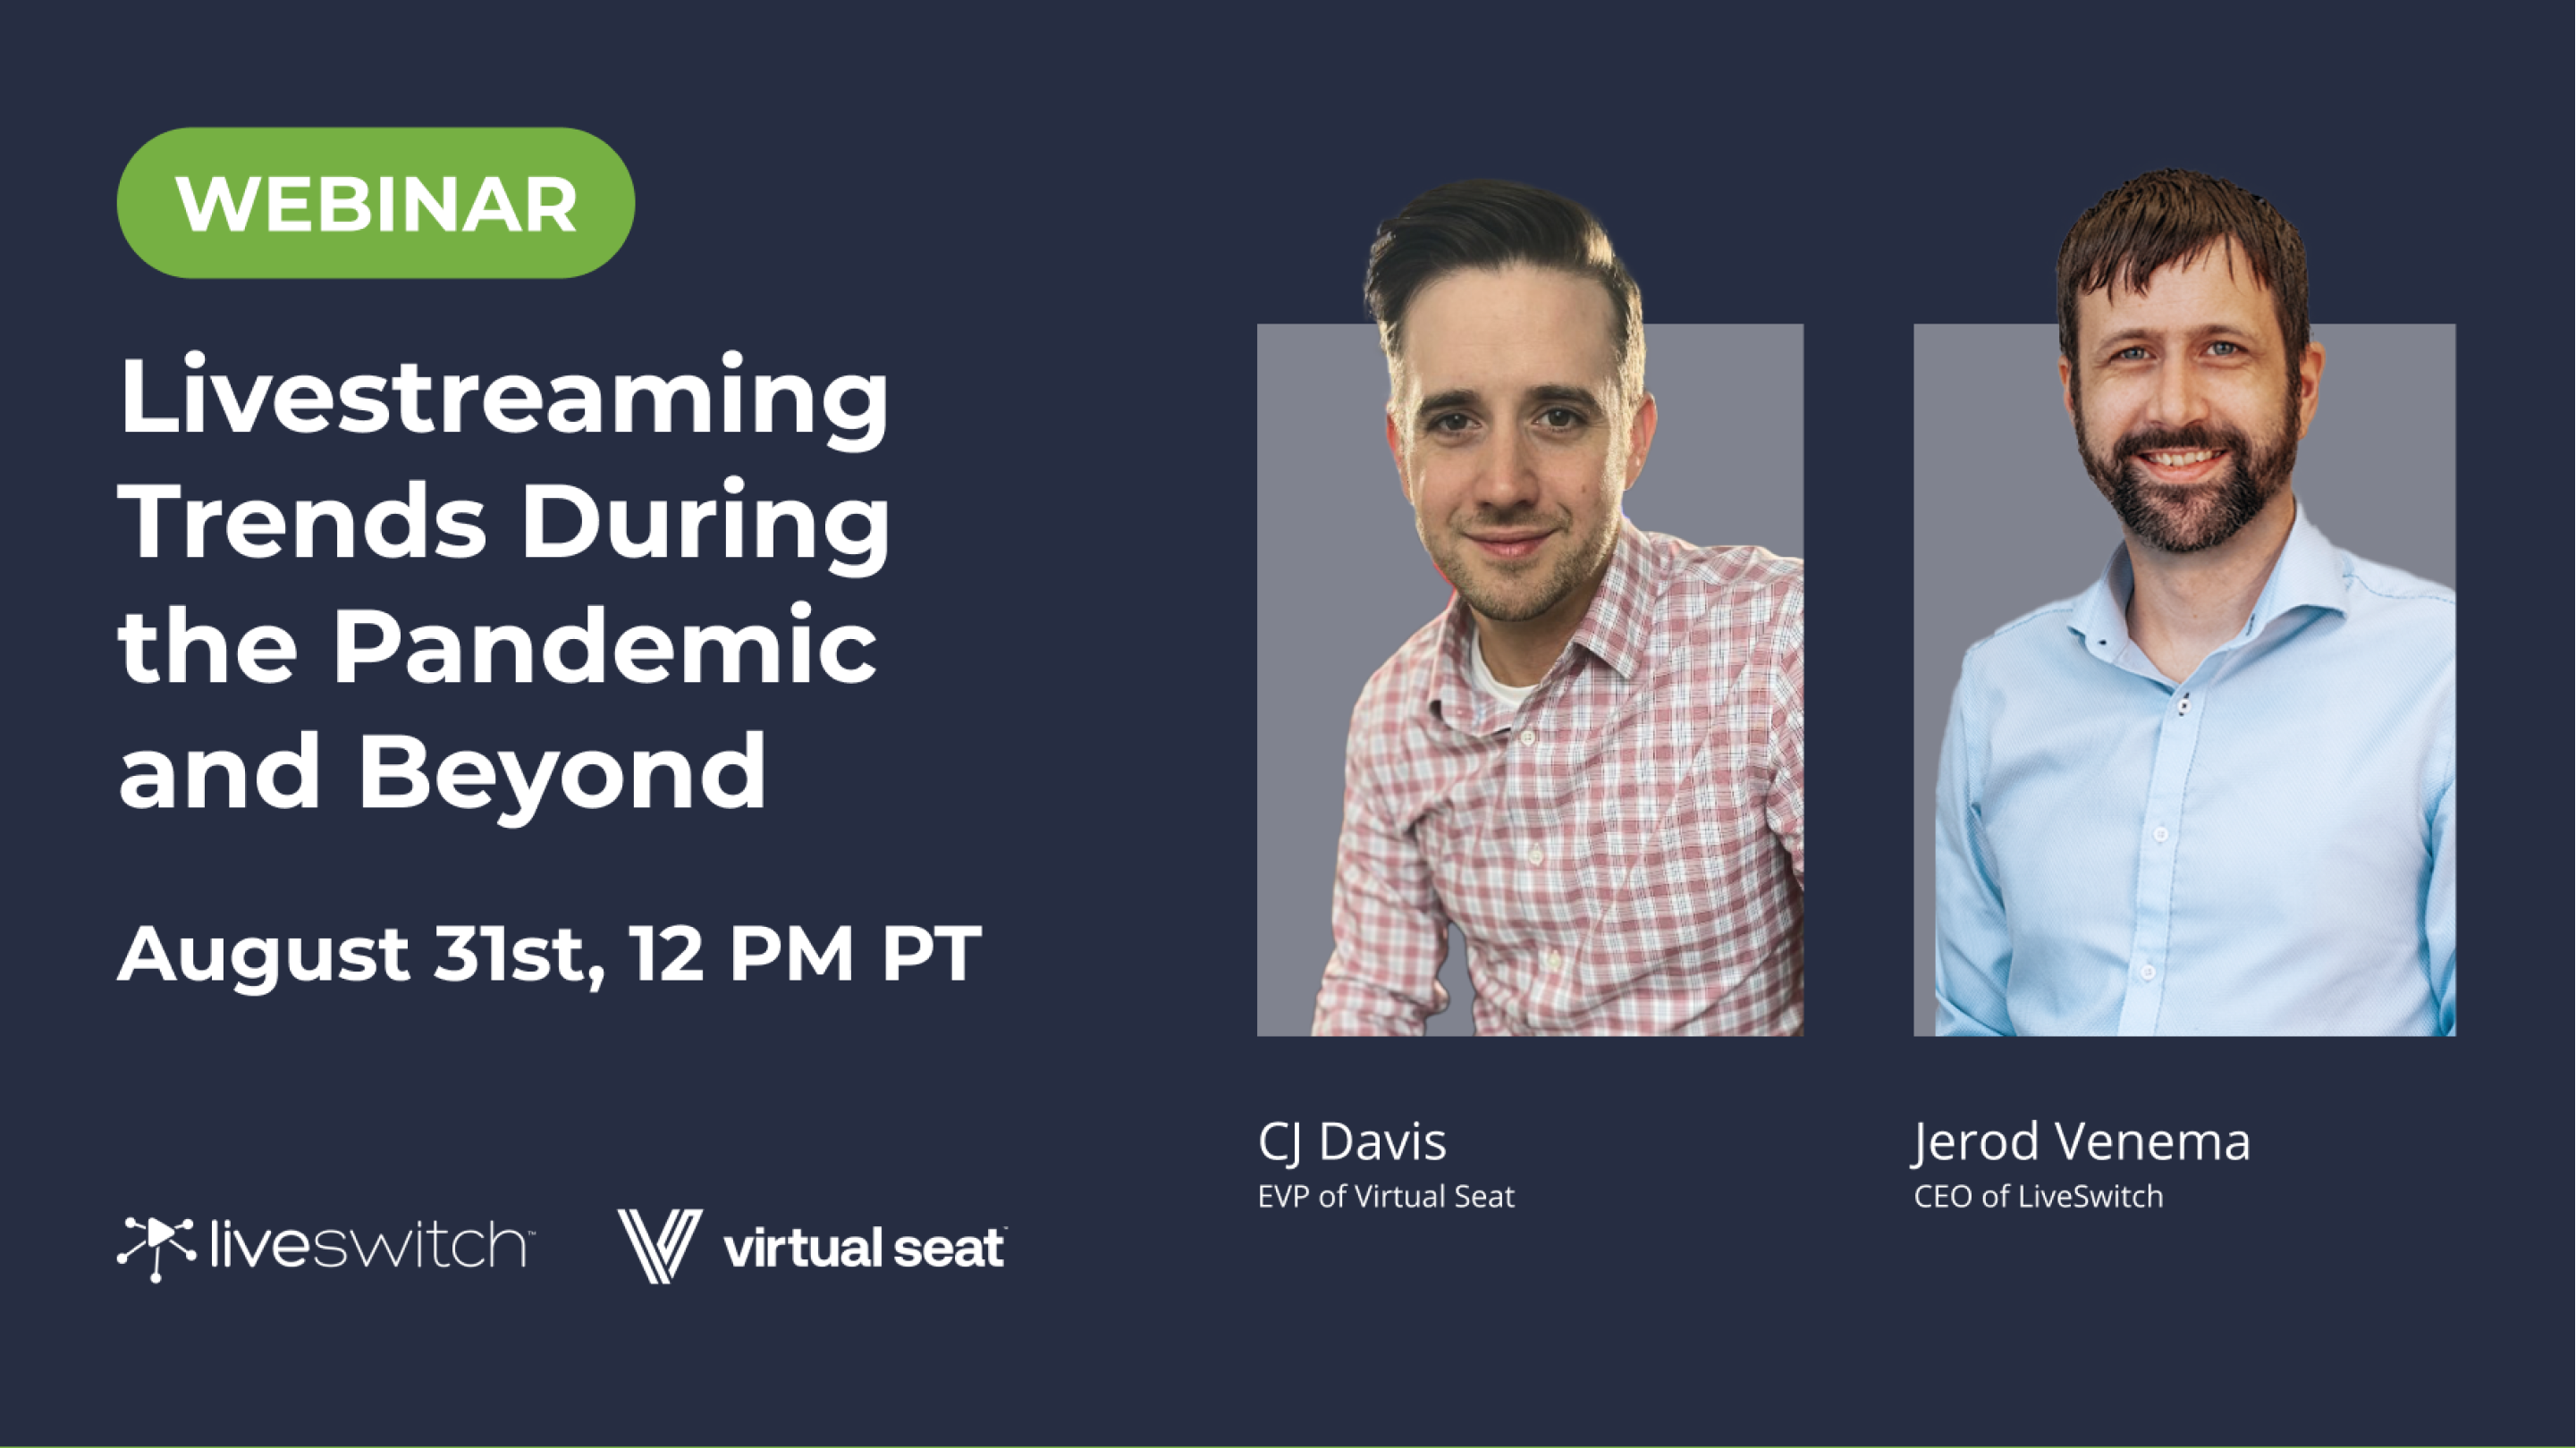 Livestreaming trends during the pandemic and beyond